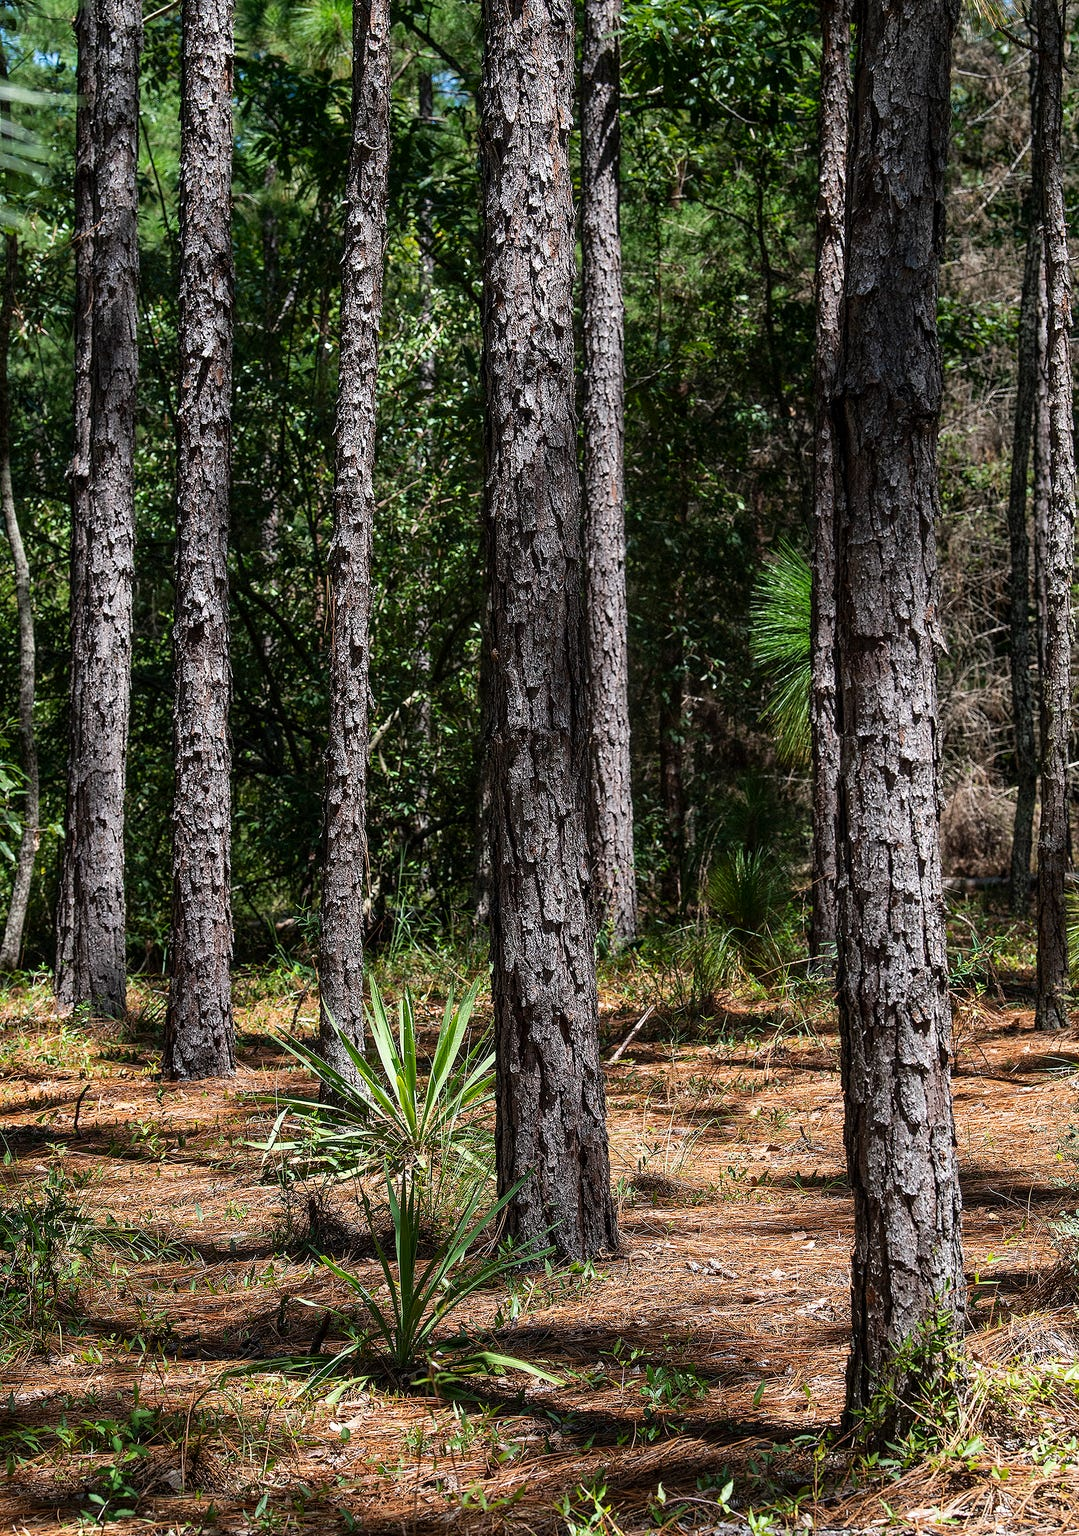 Longleaf pine trees on the property of John Pirtle, of Pirtle Forestry Services, near Billingsley, Ala., on Thursday August 15, 2019.